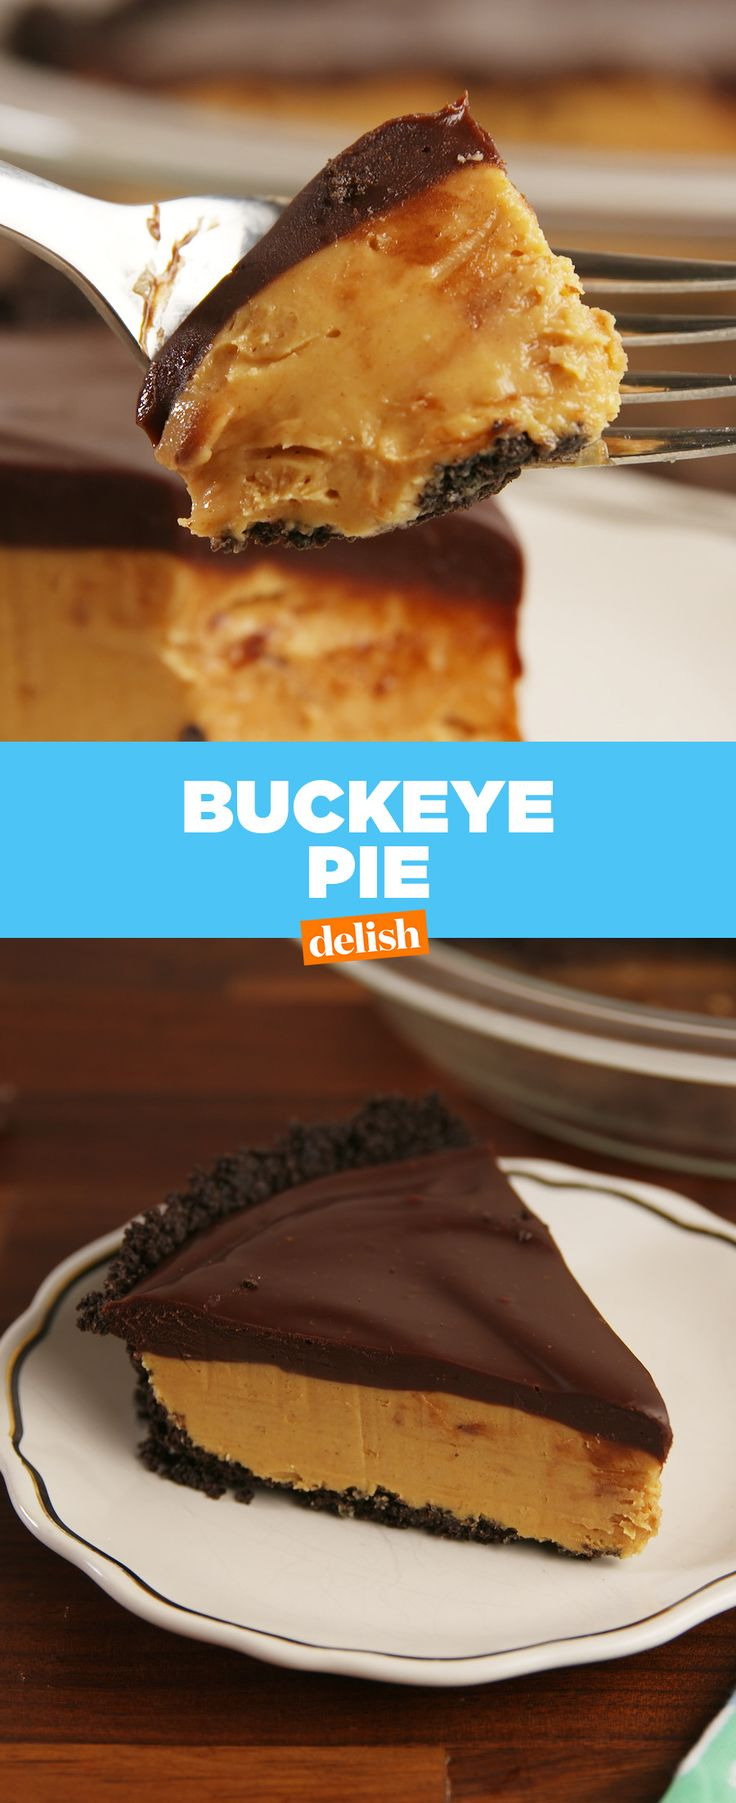 Buckeye Pie is like a Reese's cup on crack. Get the recipe at Delish.com.